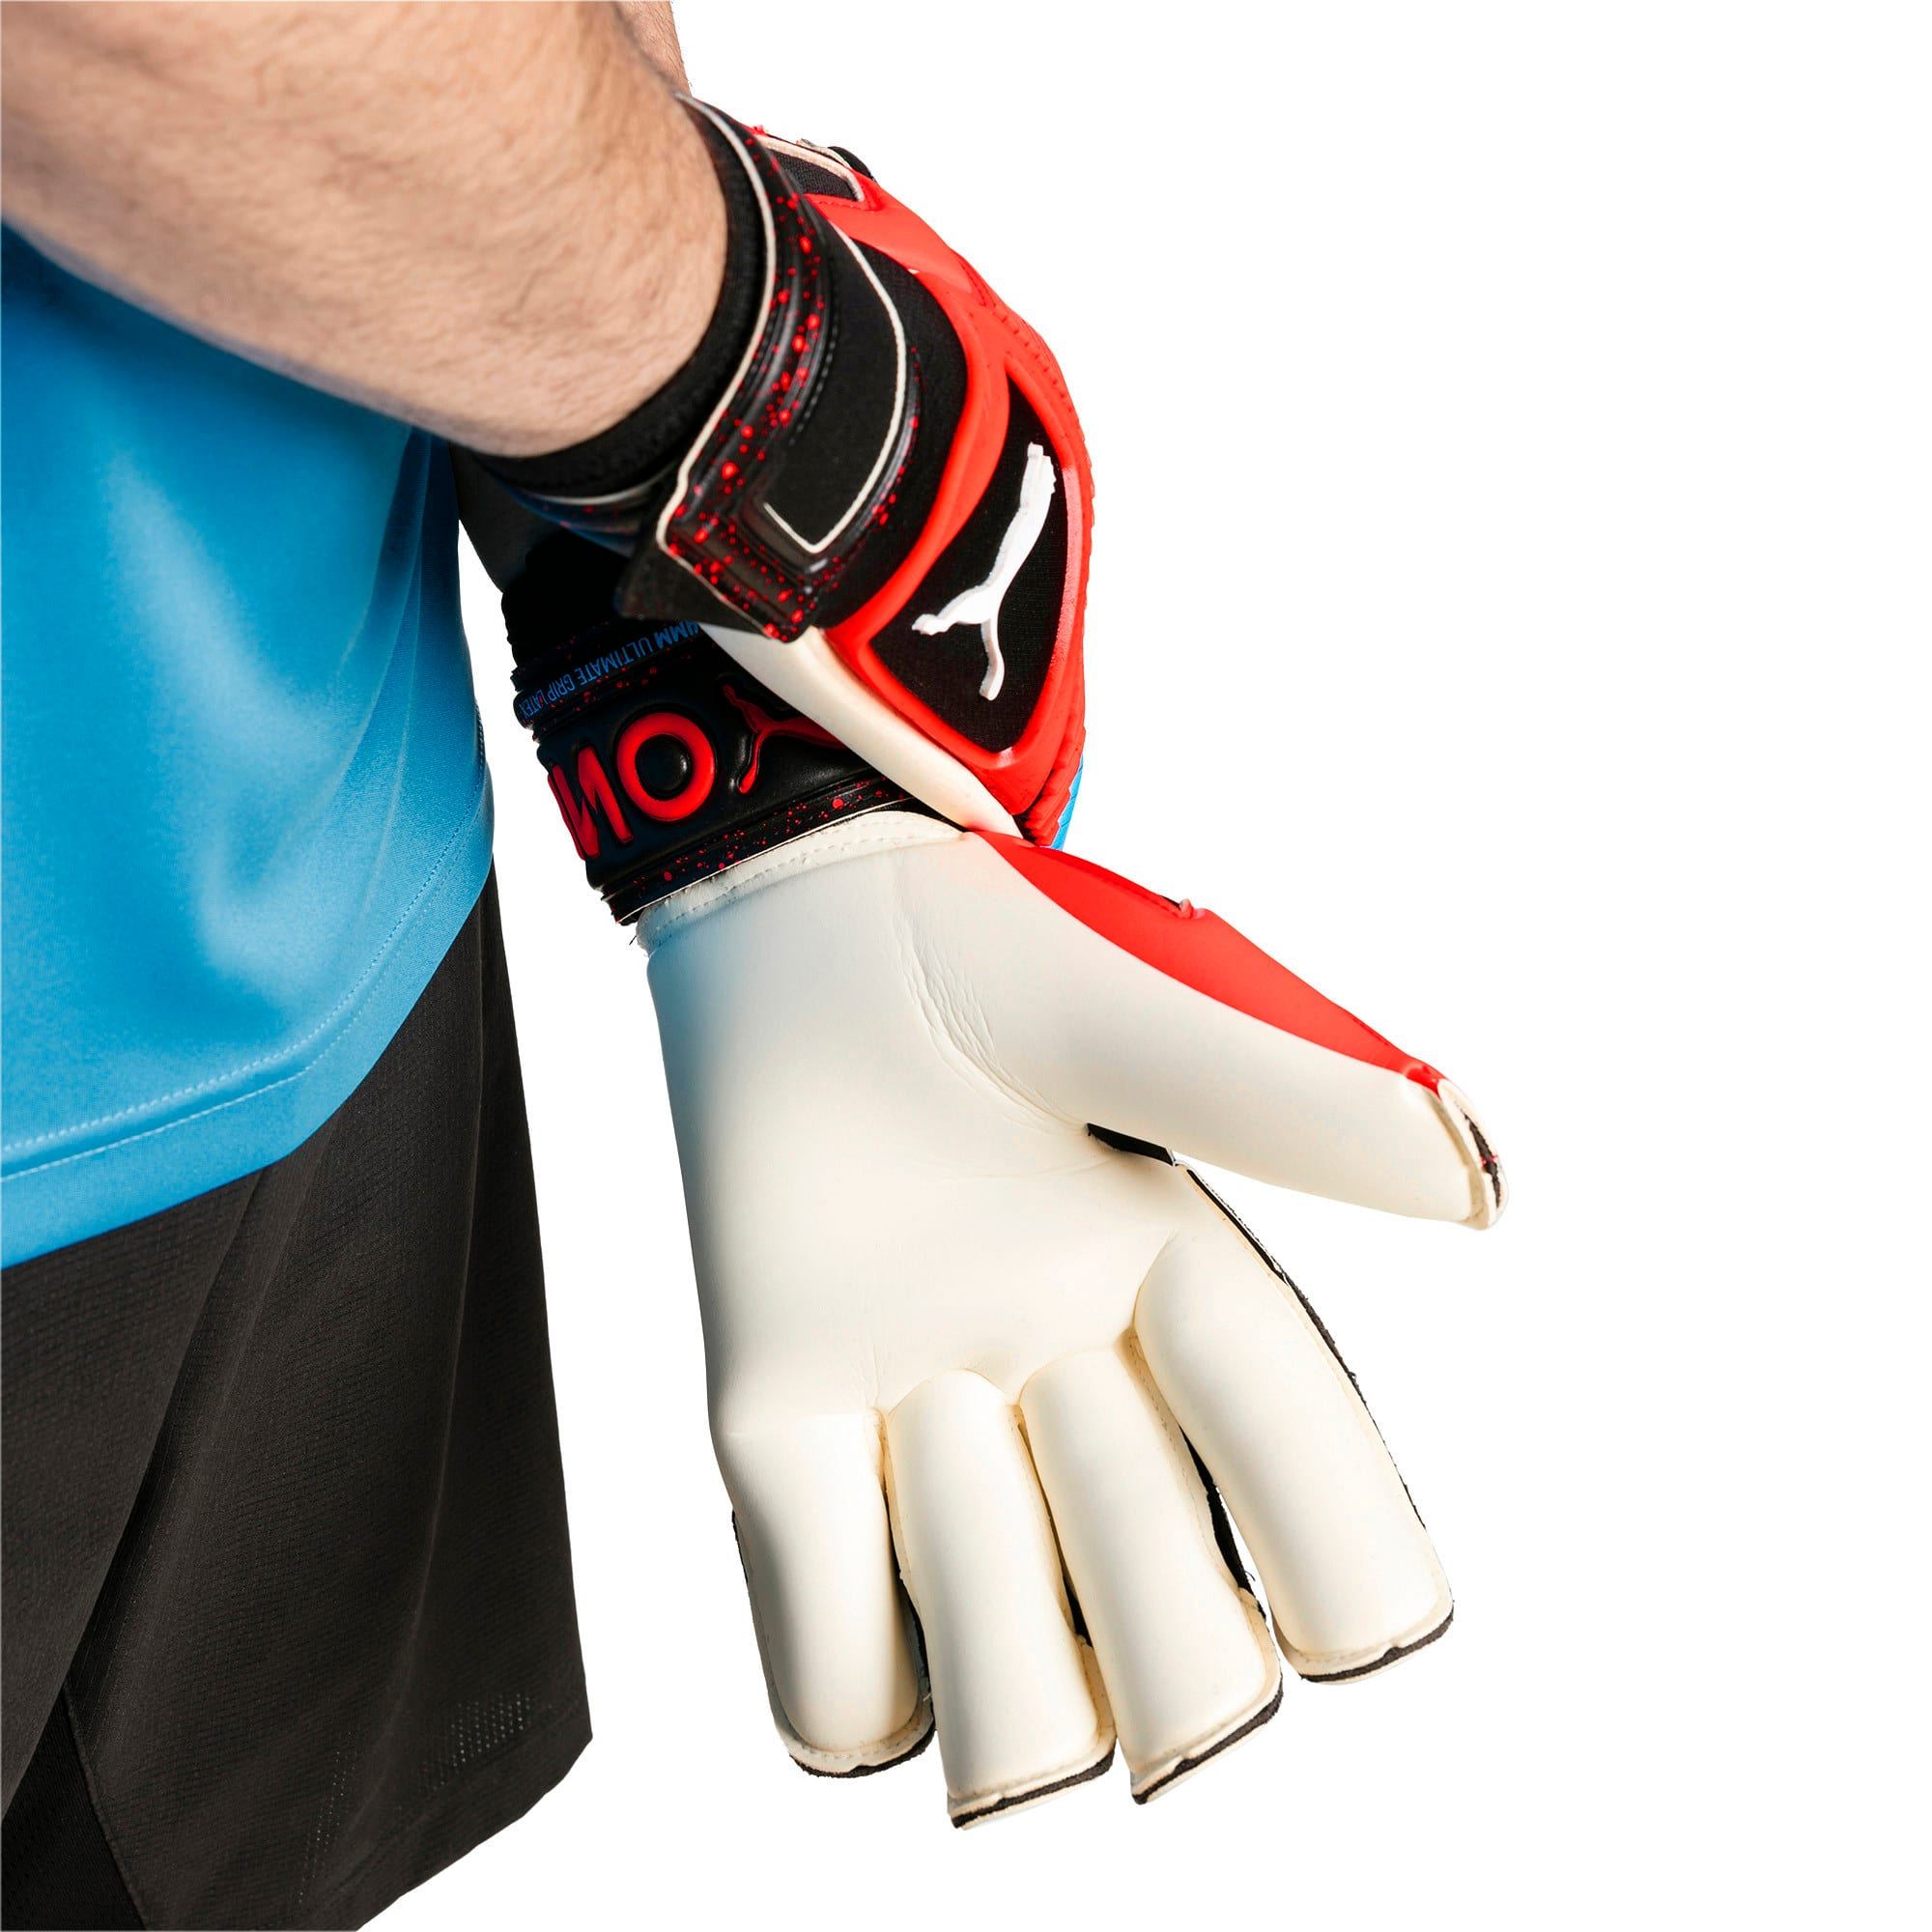 Thumbnail 3 of PUMA ONE Grip 1 Hybrid Pro Fußball Torwarthandschuhe, Black-Bleu Azur-Red Blast, medium